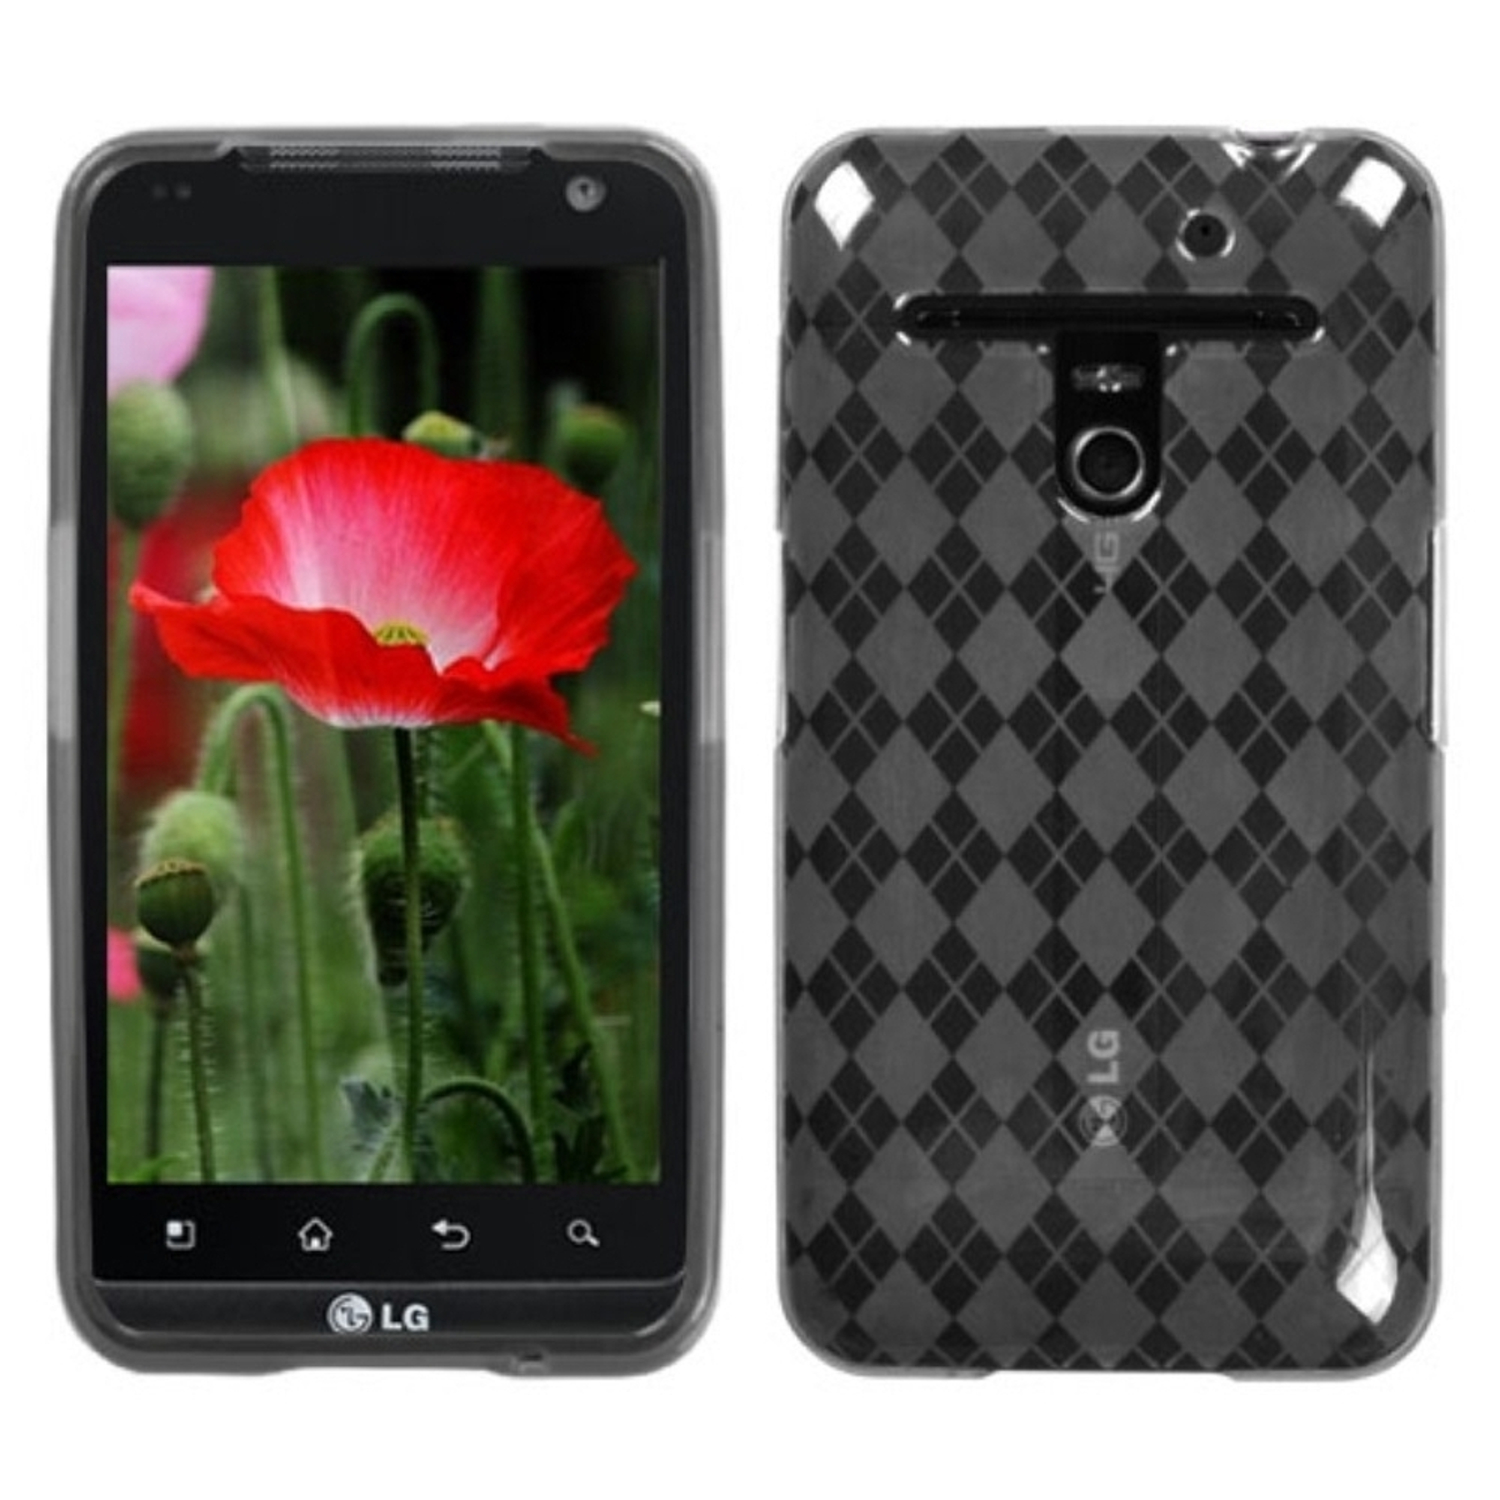 Insten Smoke Argyle Candy Skin Case for LG: VS910 (Revolution), Esteem